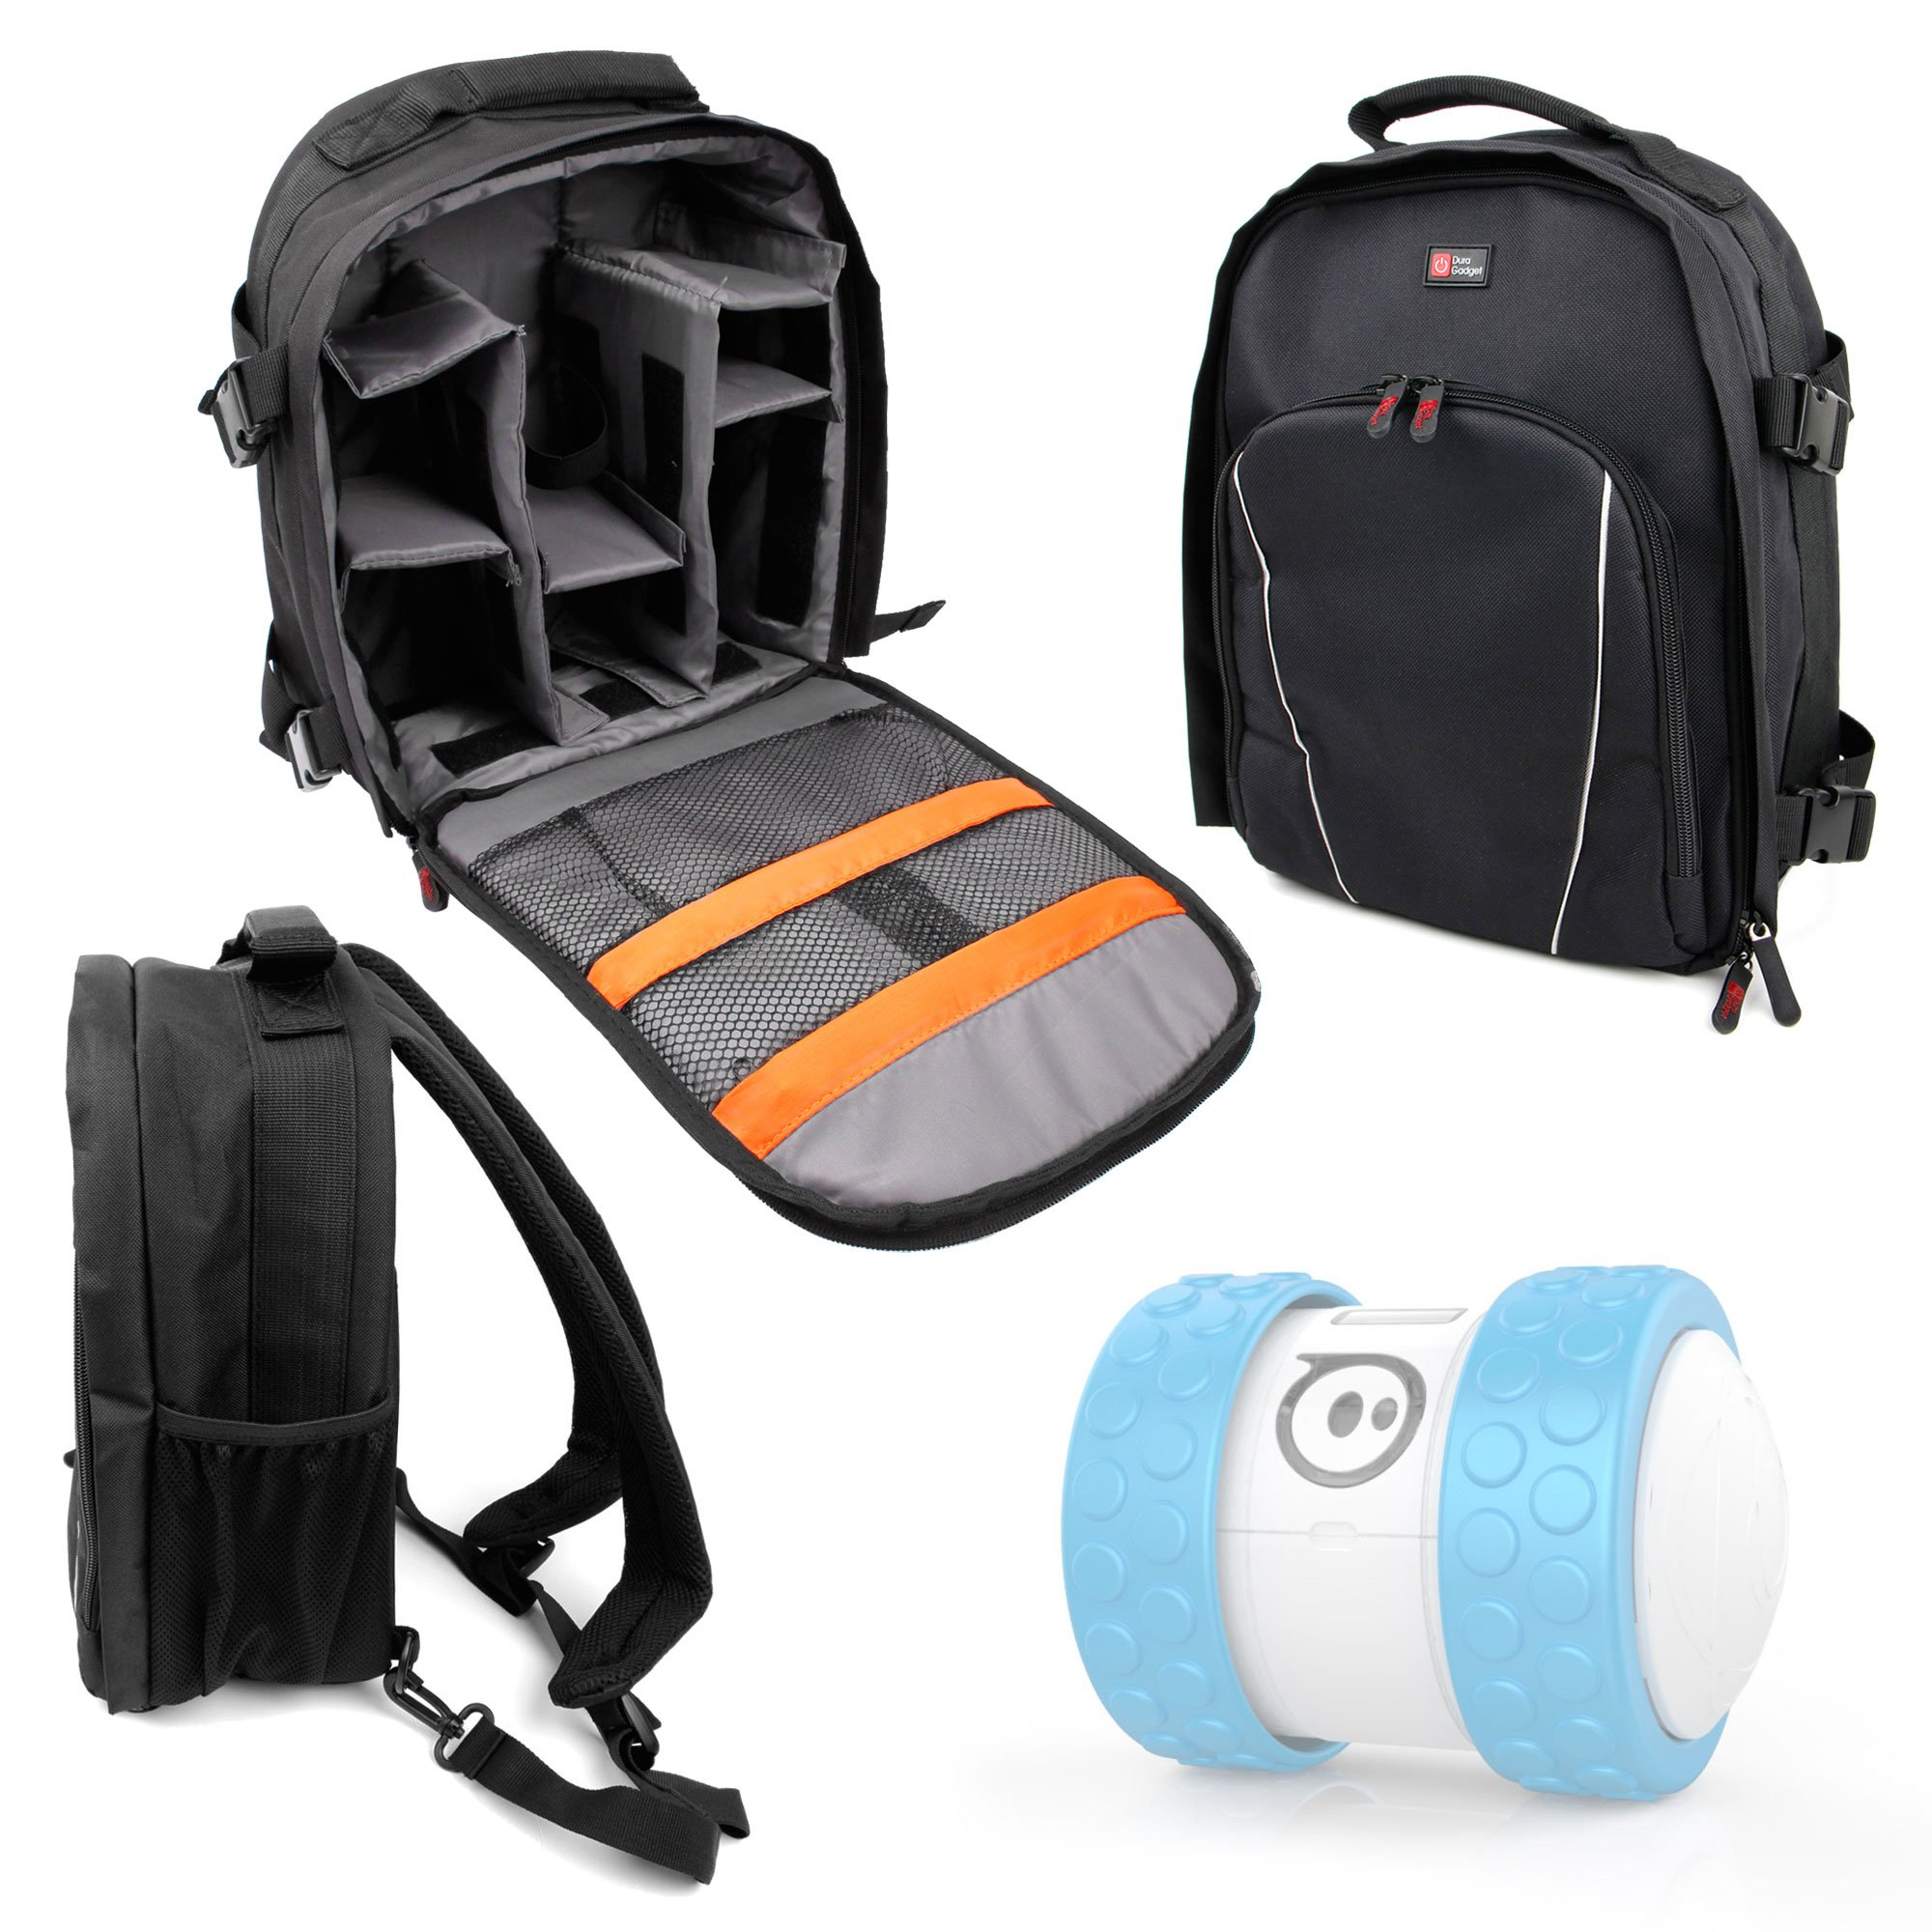 DURAGADGET Premium Quality, Water-Resistant Compact Backpack Organiser - Compatible with Sphero Ollie/Sphero Ball Robot - with Customisable Interior & Additional Raincover by DURAGADGET (Image #1)